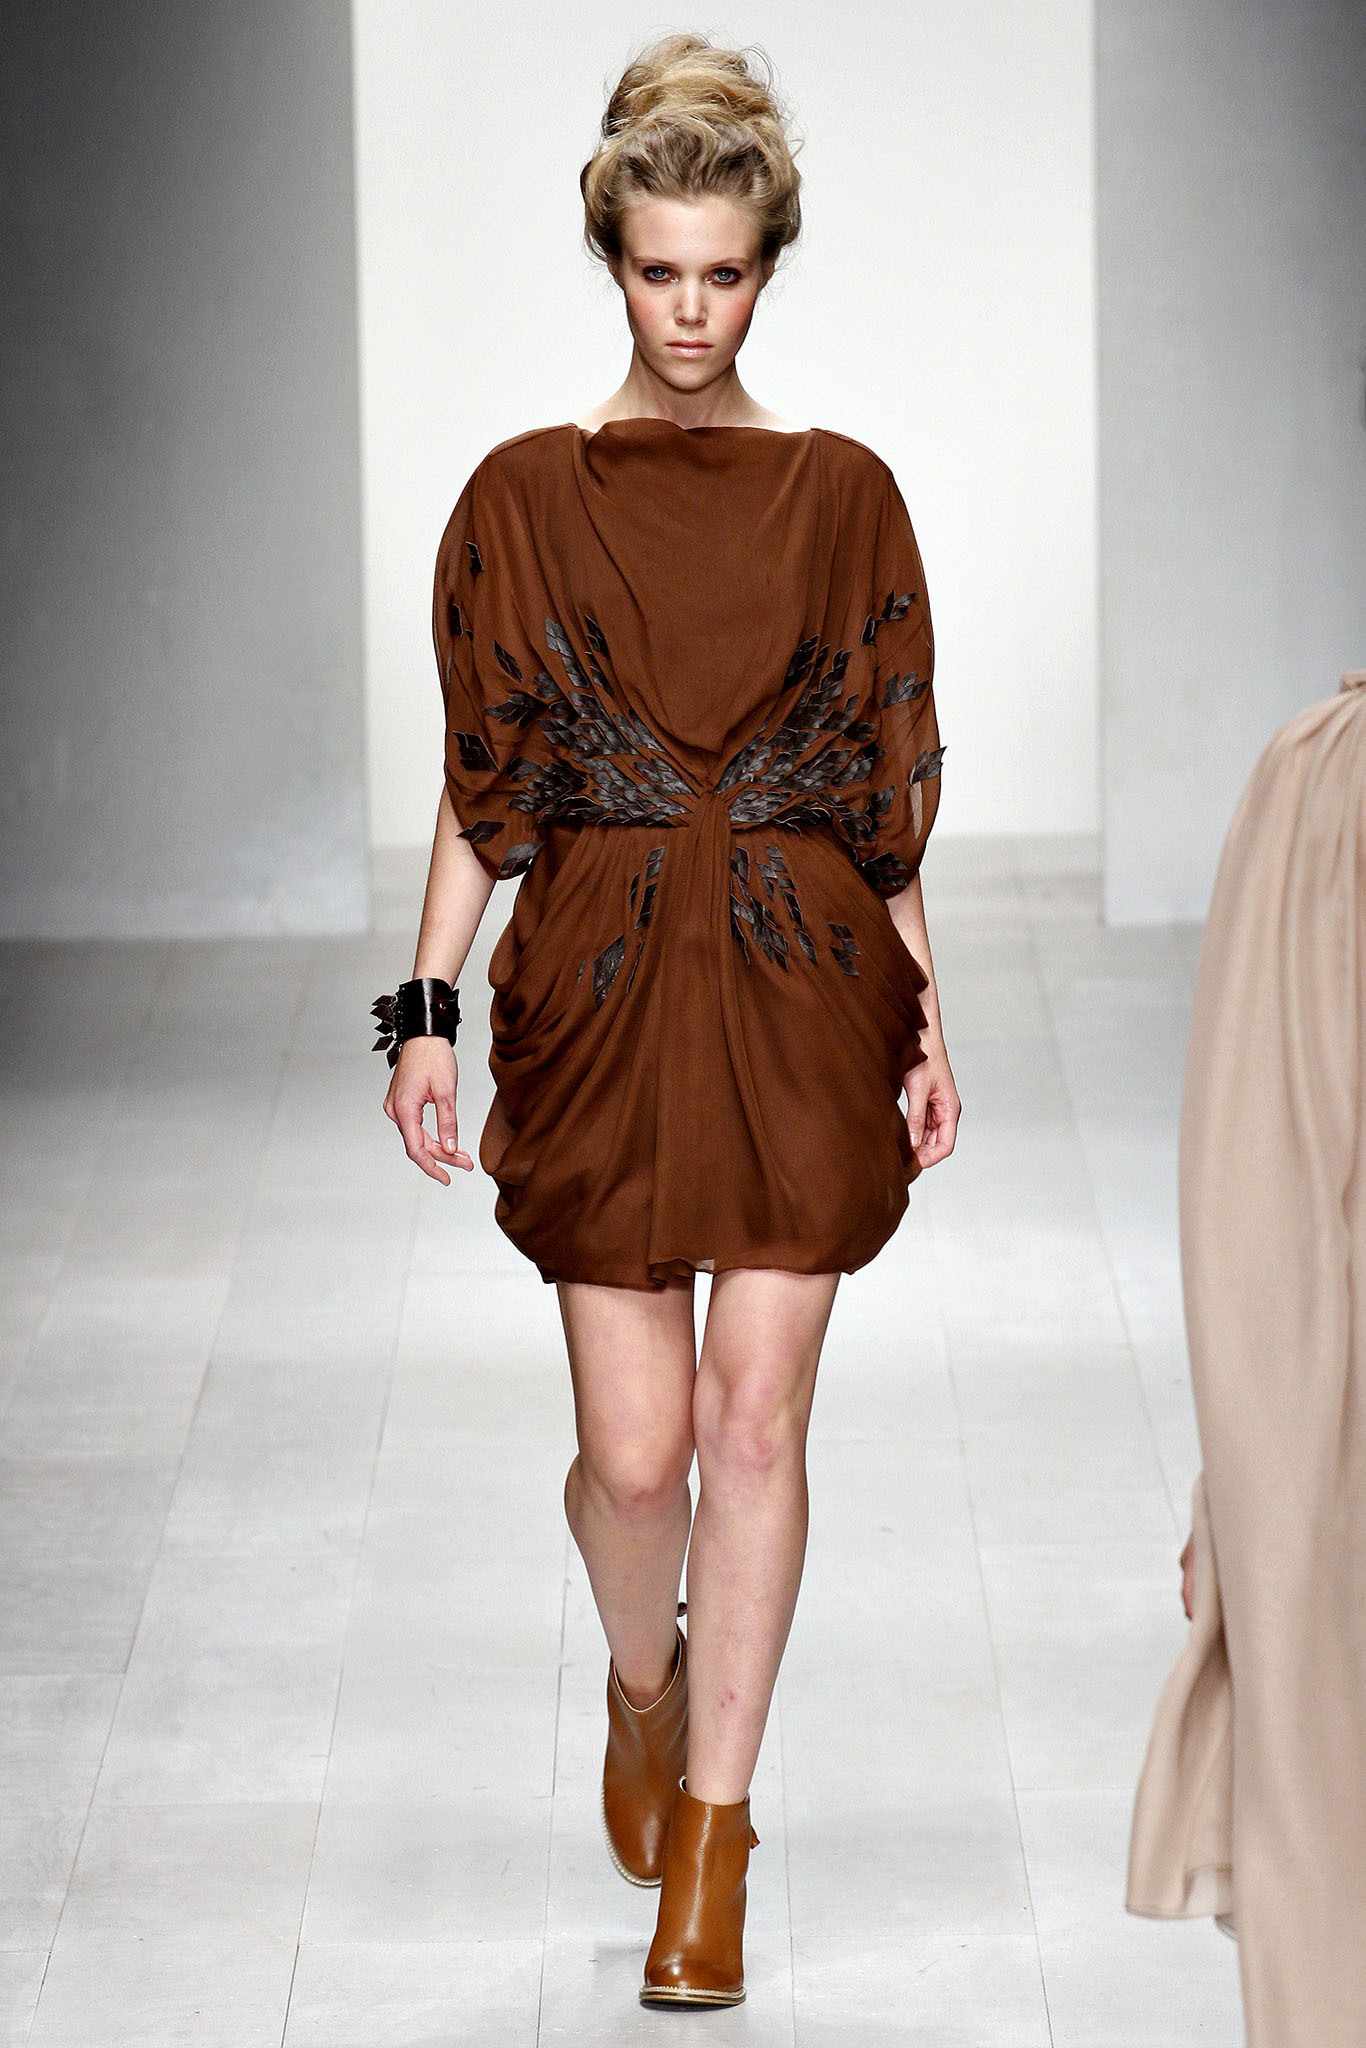 London Fashion Week [S/S '13] – The Roundup